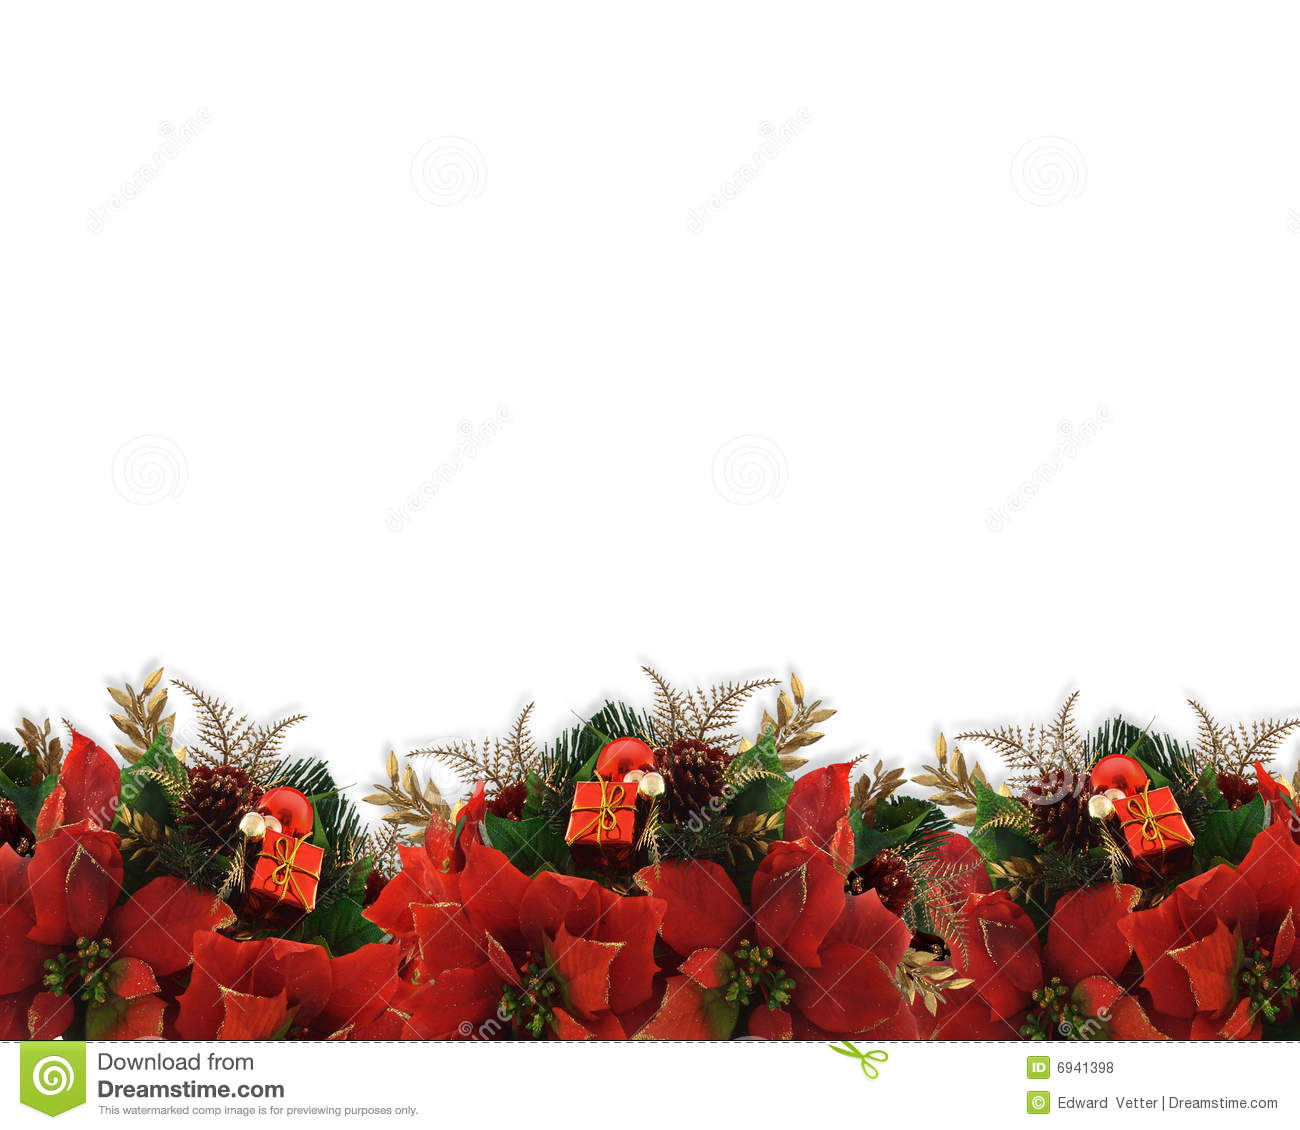 Christmas flowers pictures free svg free stock Christmas Flowers Border Poinsettias Royalty Free Stock Photos ... svg free stock